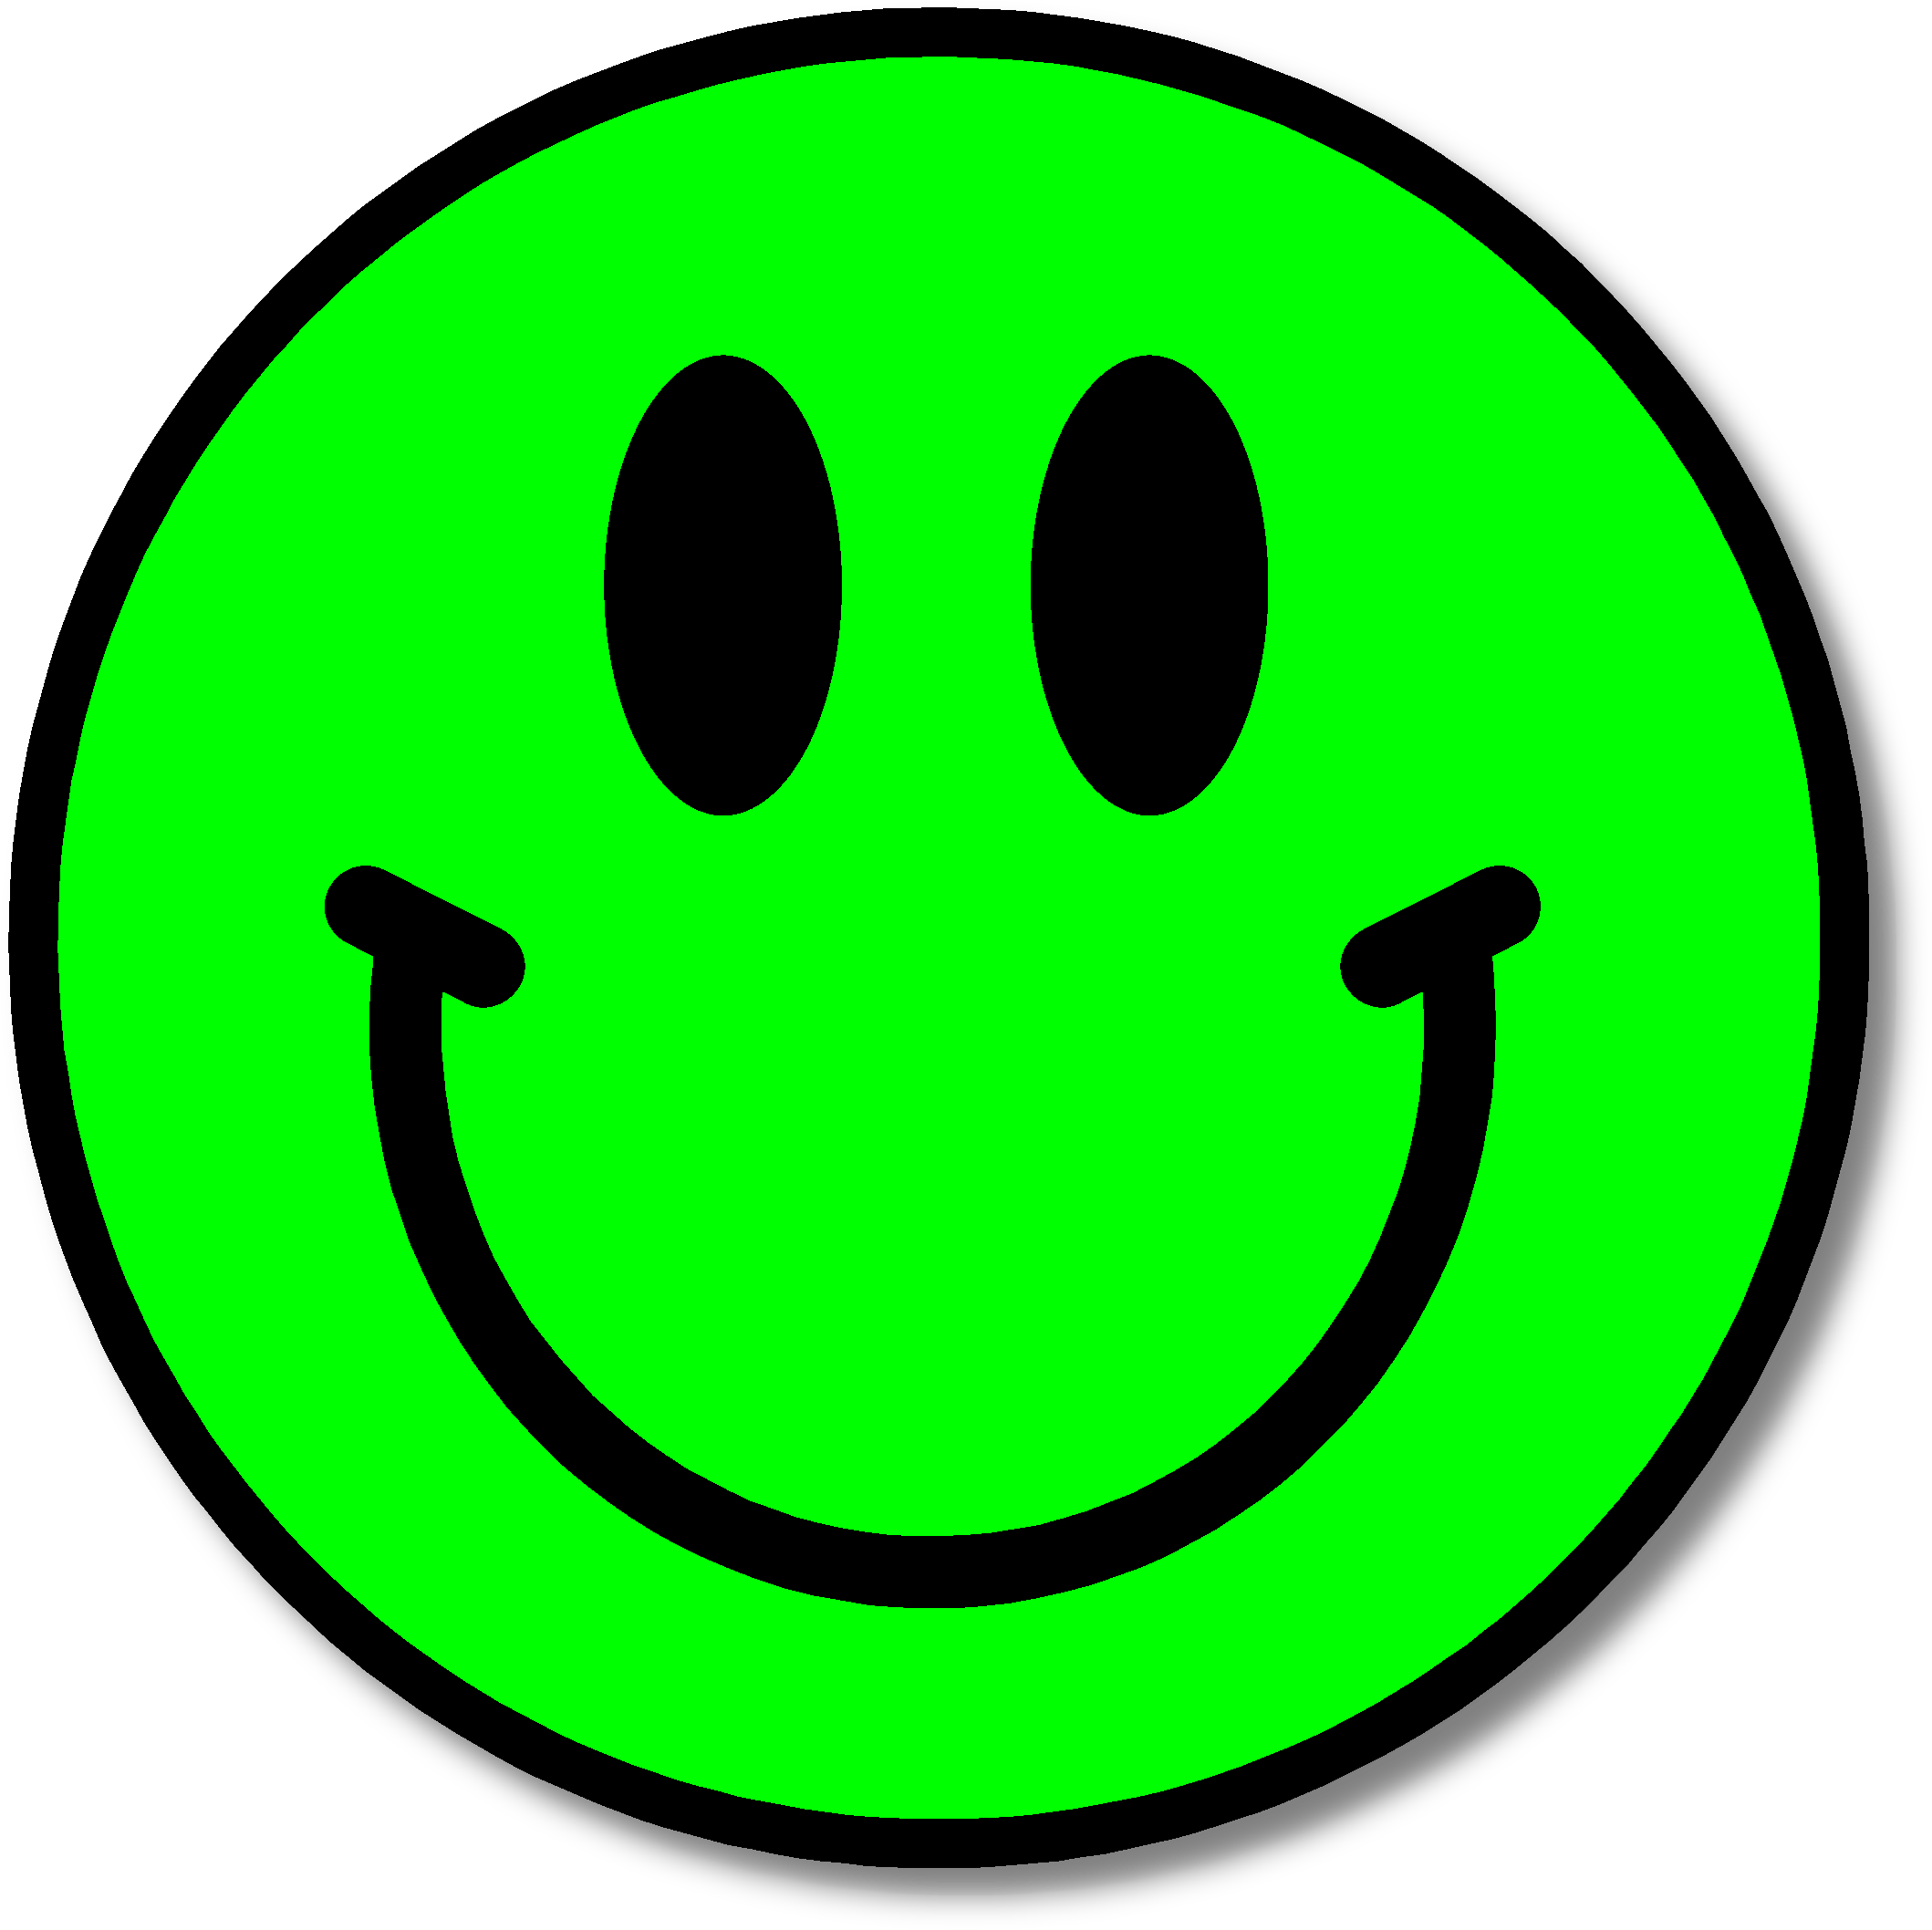 Happy face symbol